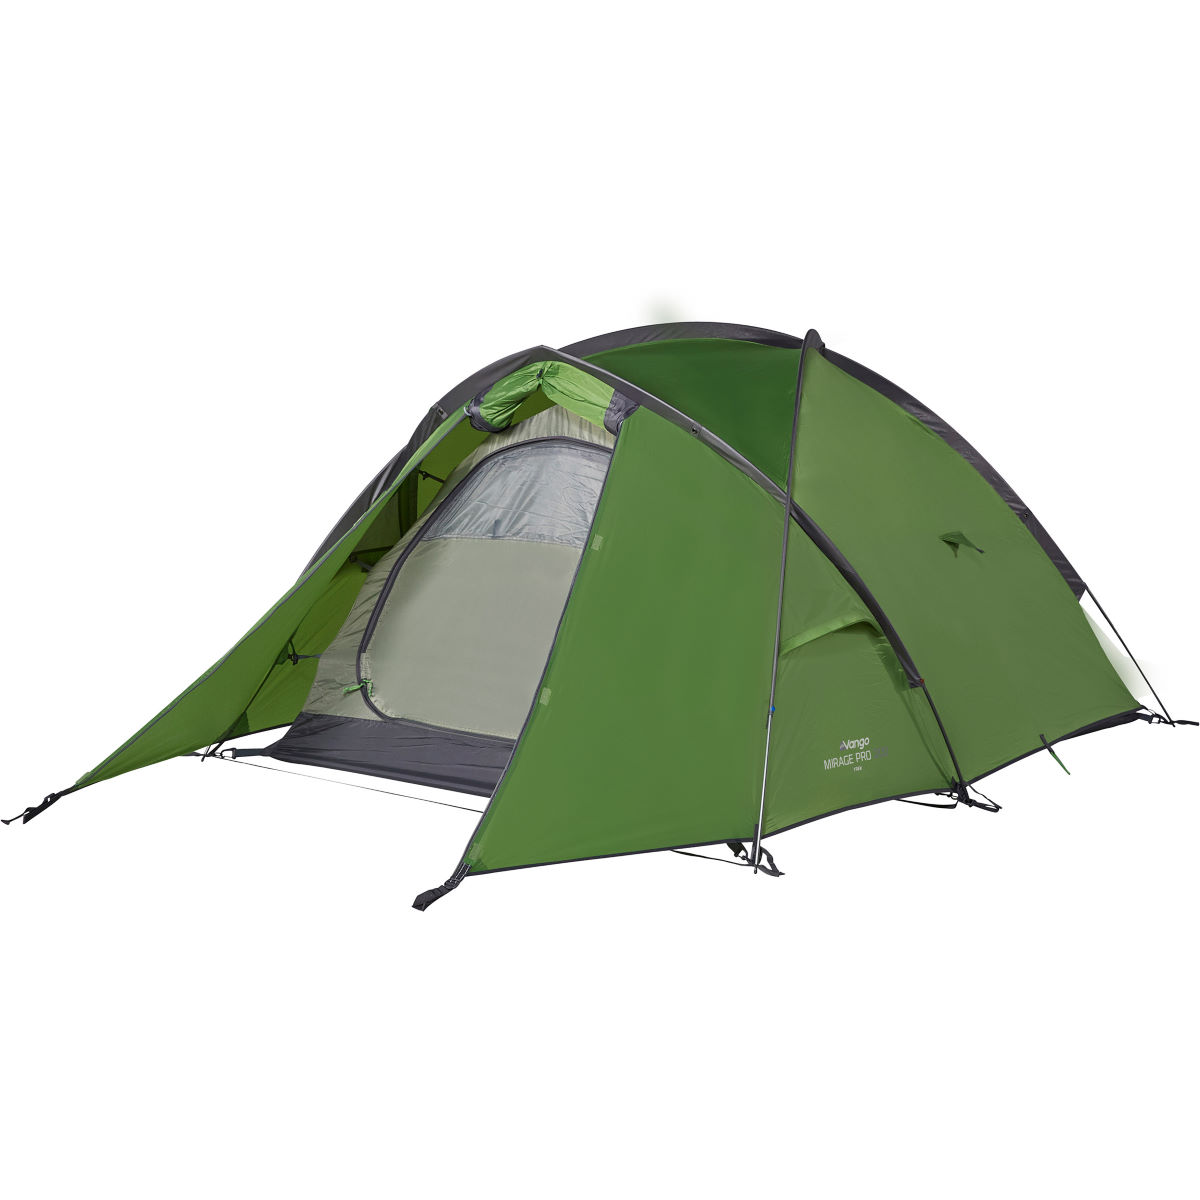 Vango Vango Mirage Pro 200 Two Person Tent   Tents